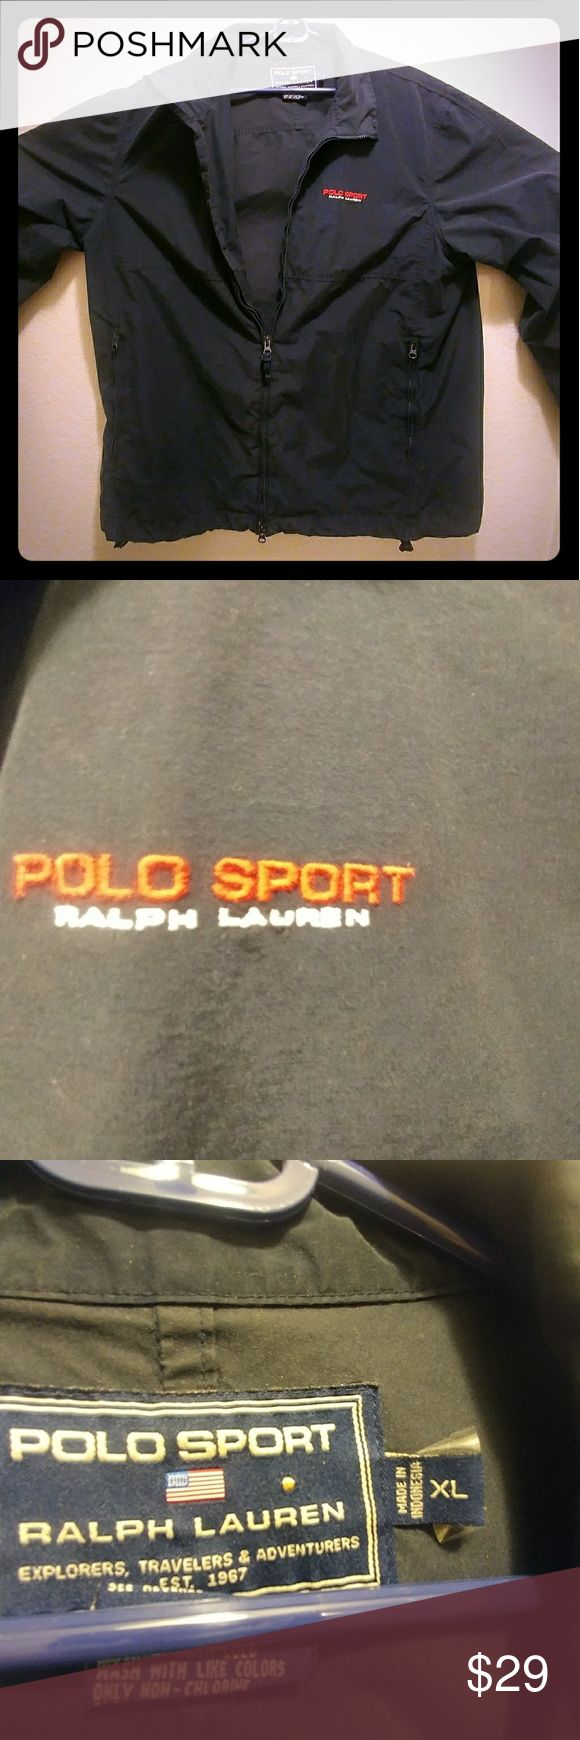 Ralph Lauren polo jacket Vintage, dark blue, size extra large Ralph Lauren Jackets & Coats Windbreakers